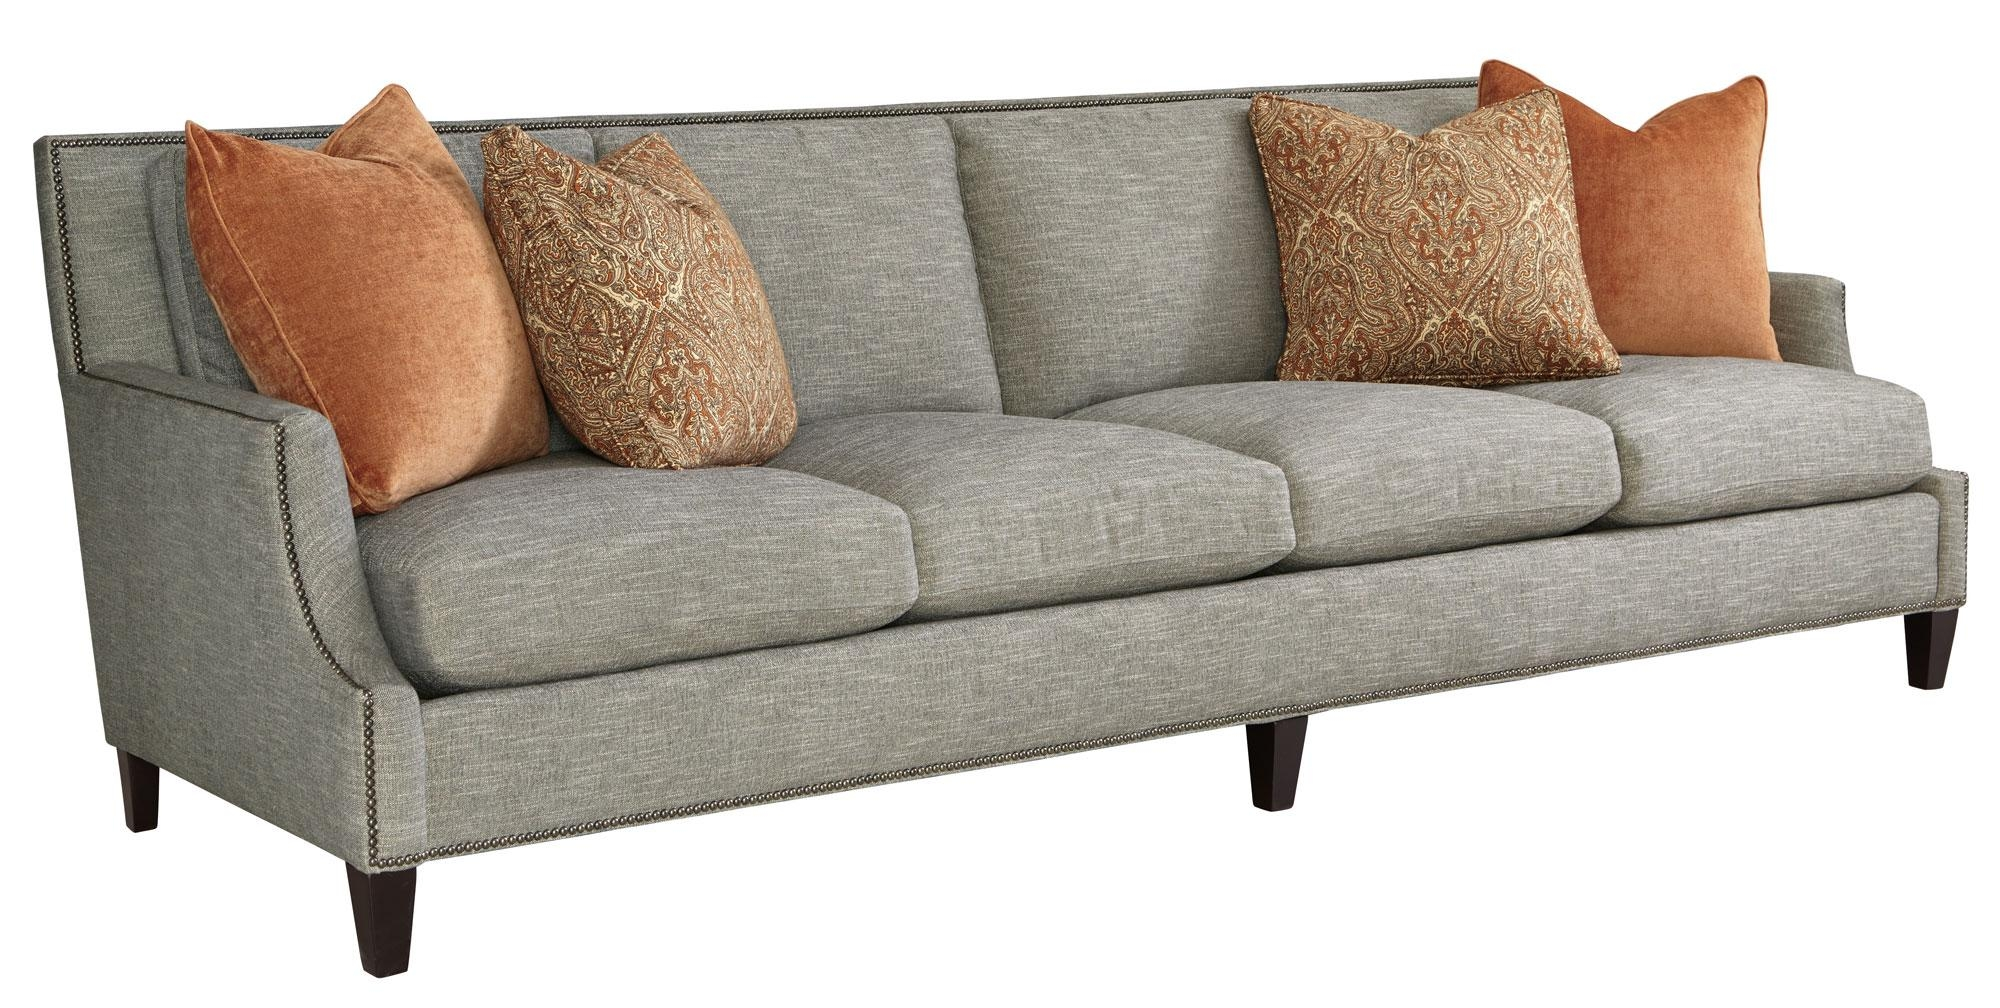 Express Program | Bernhardt With Bernhardt Brae Sofas (View 20 of 20)